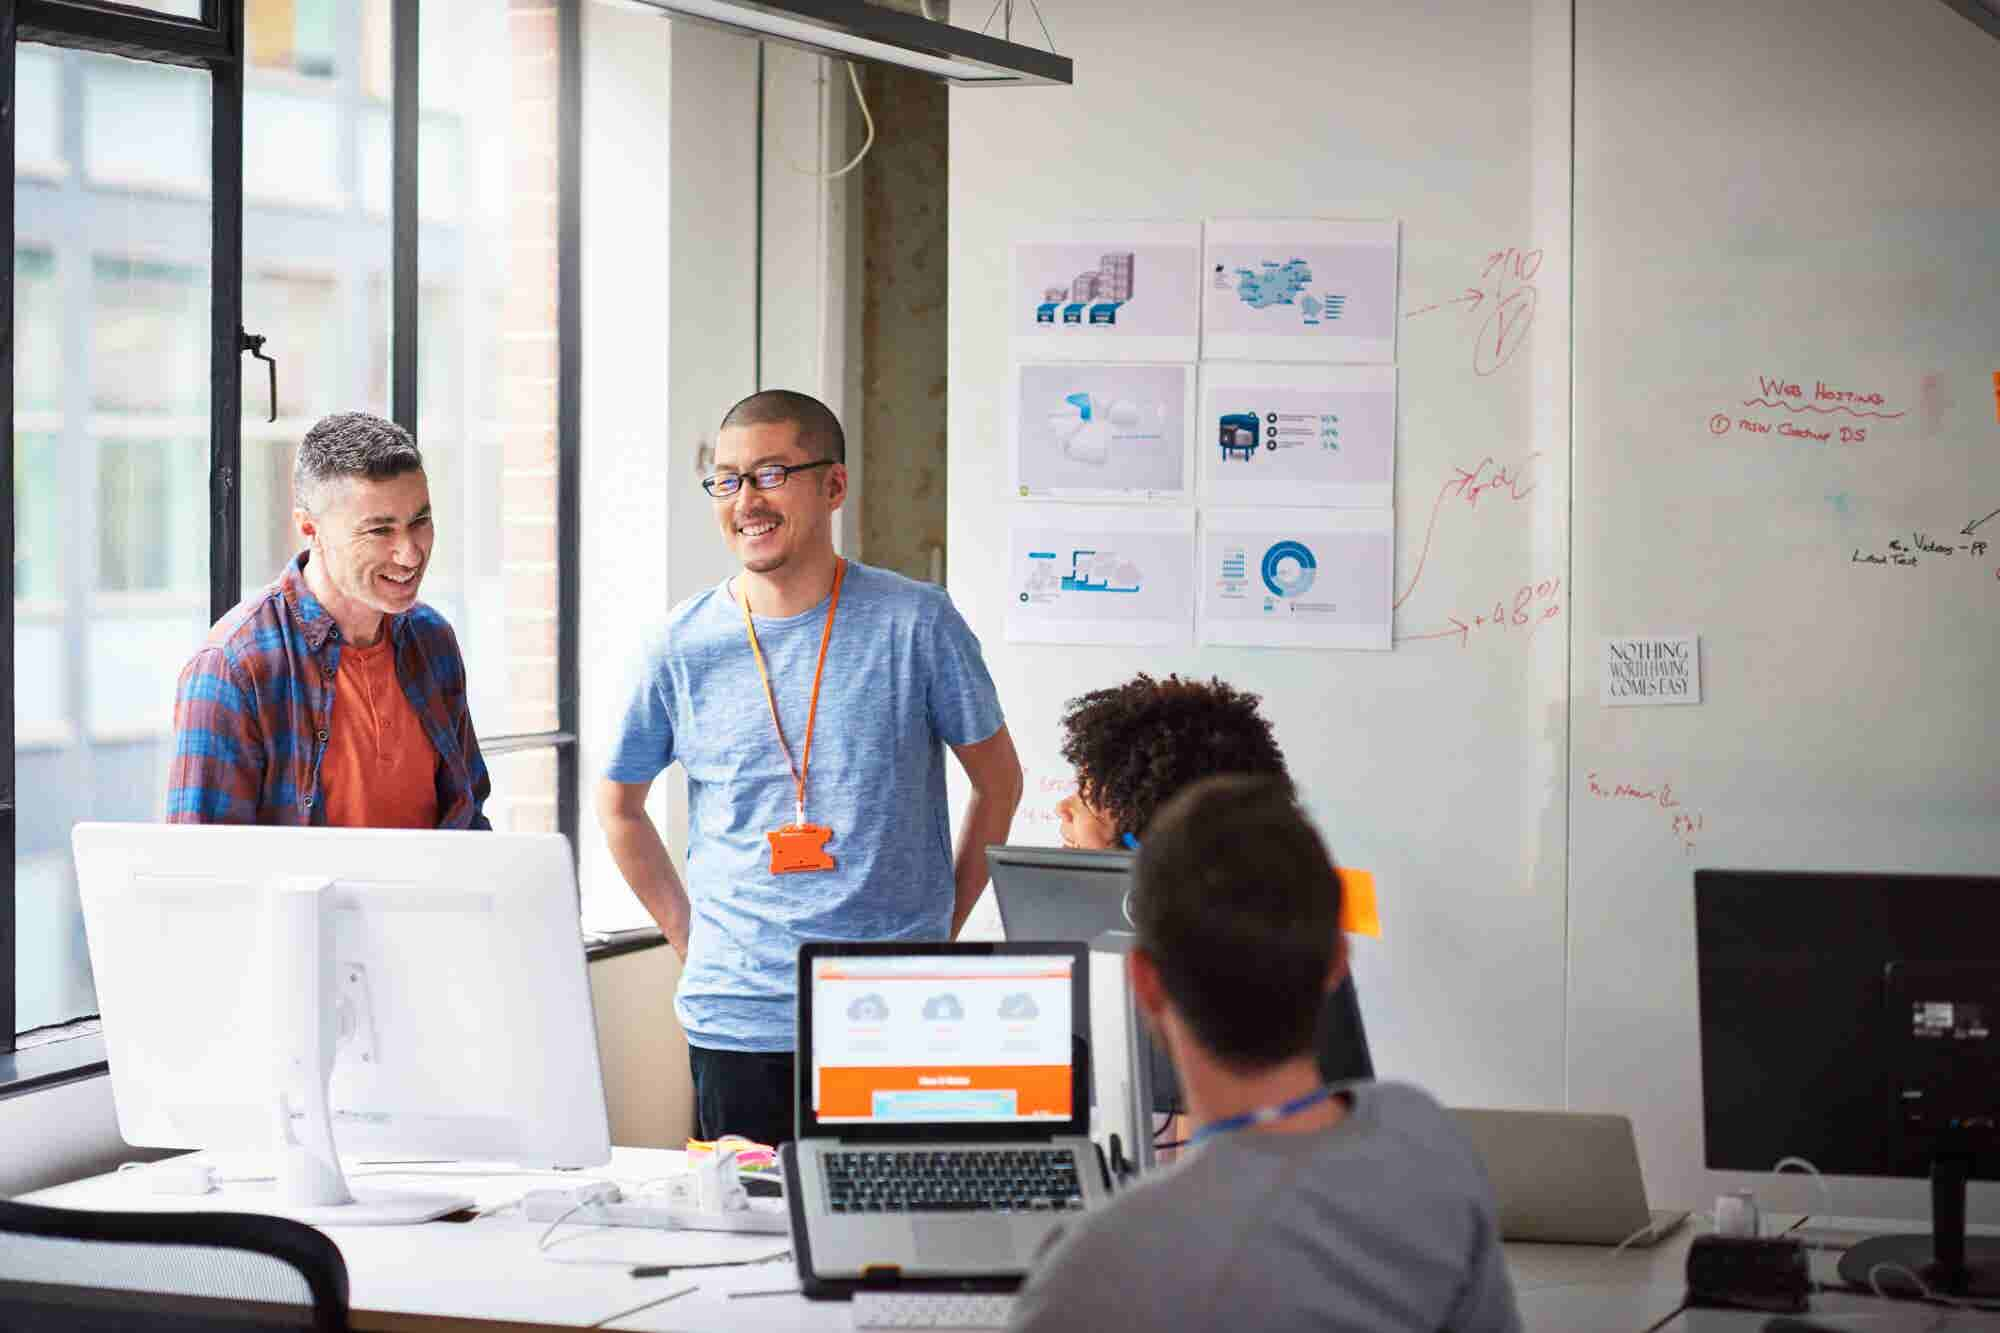 6 Reasons Why You Should Prototype Your Idea Before Developing It